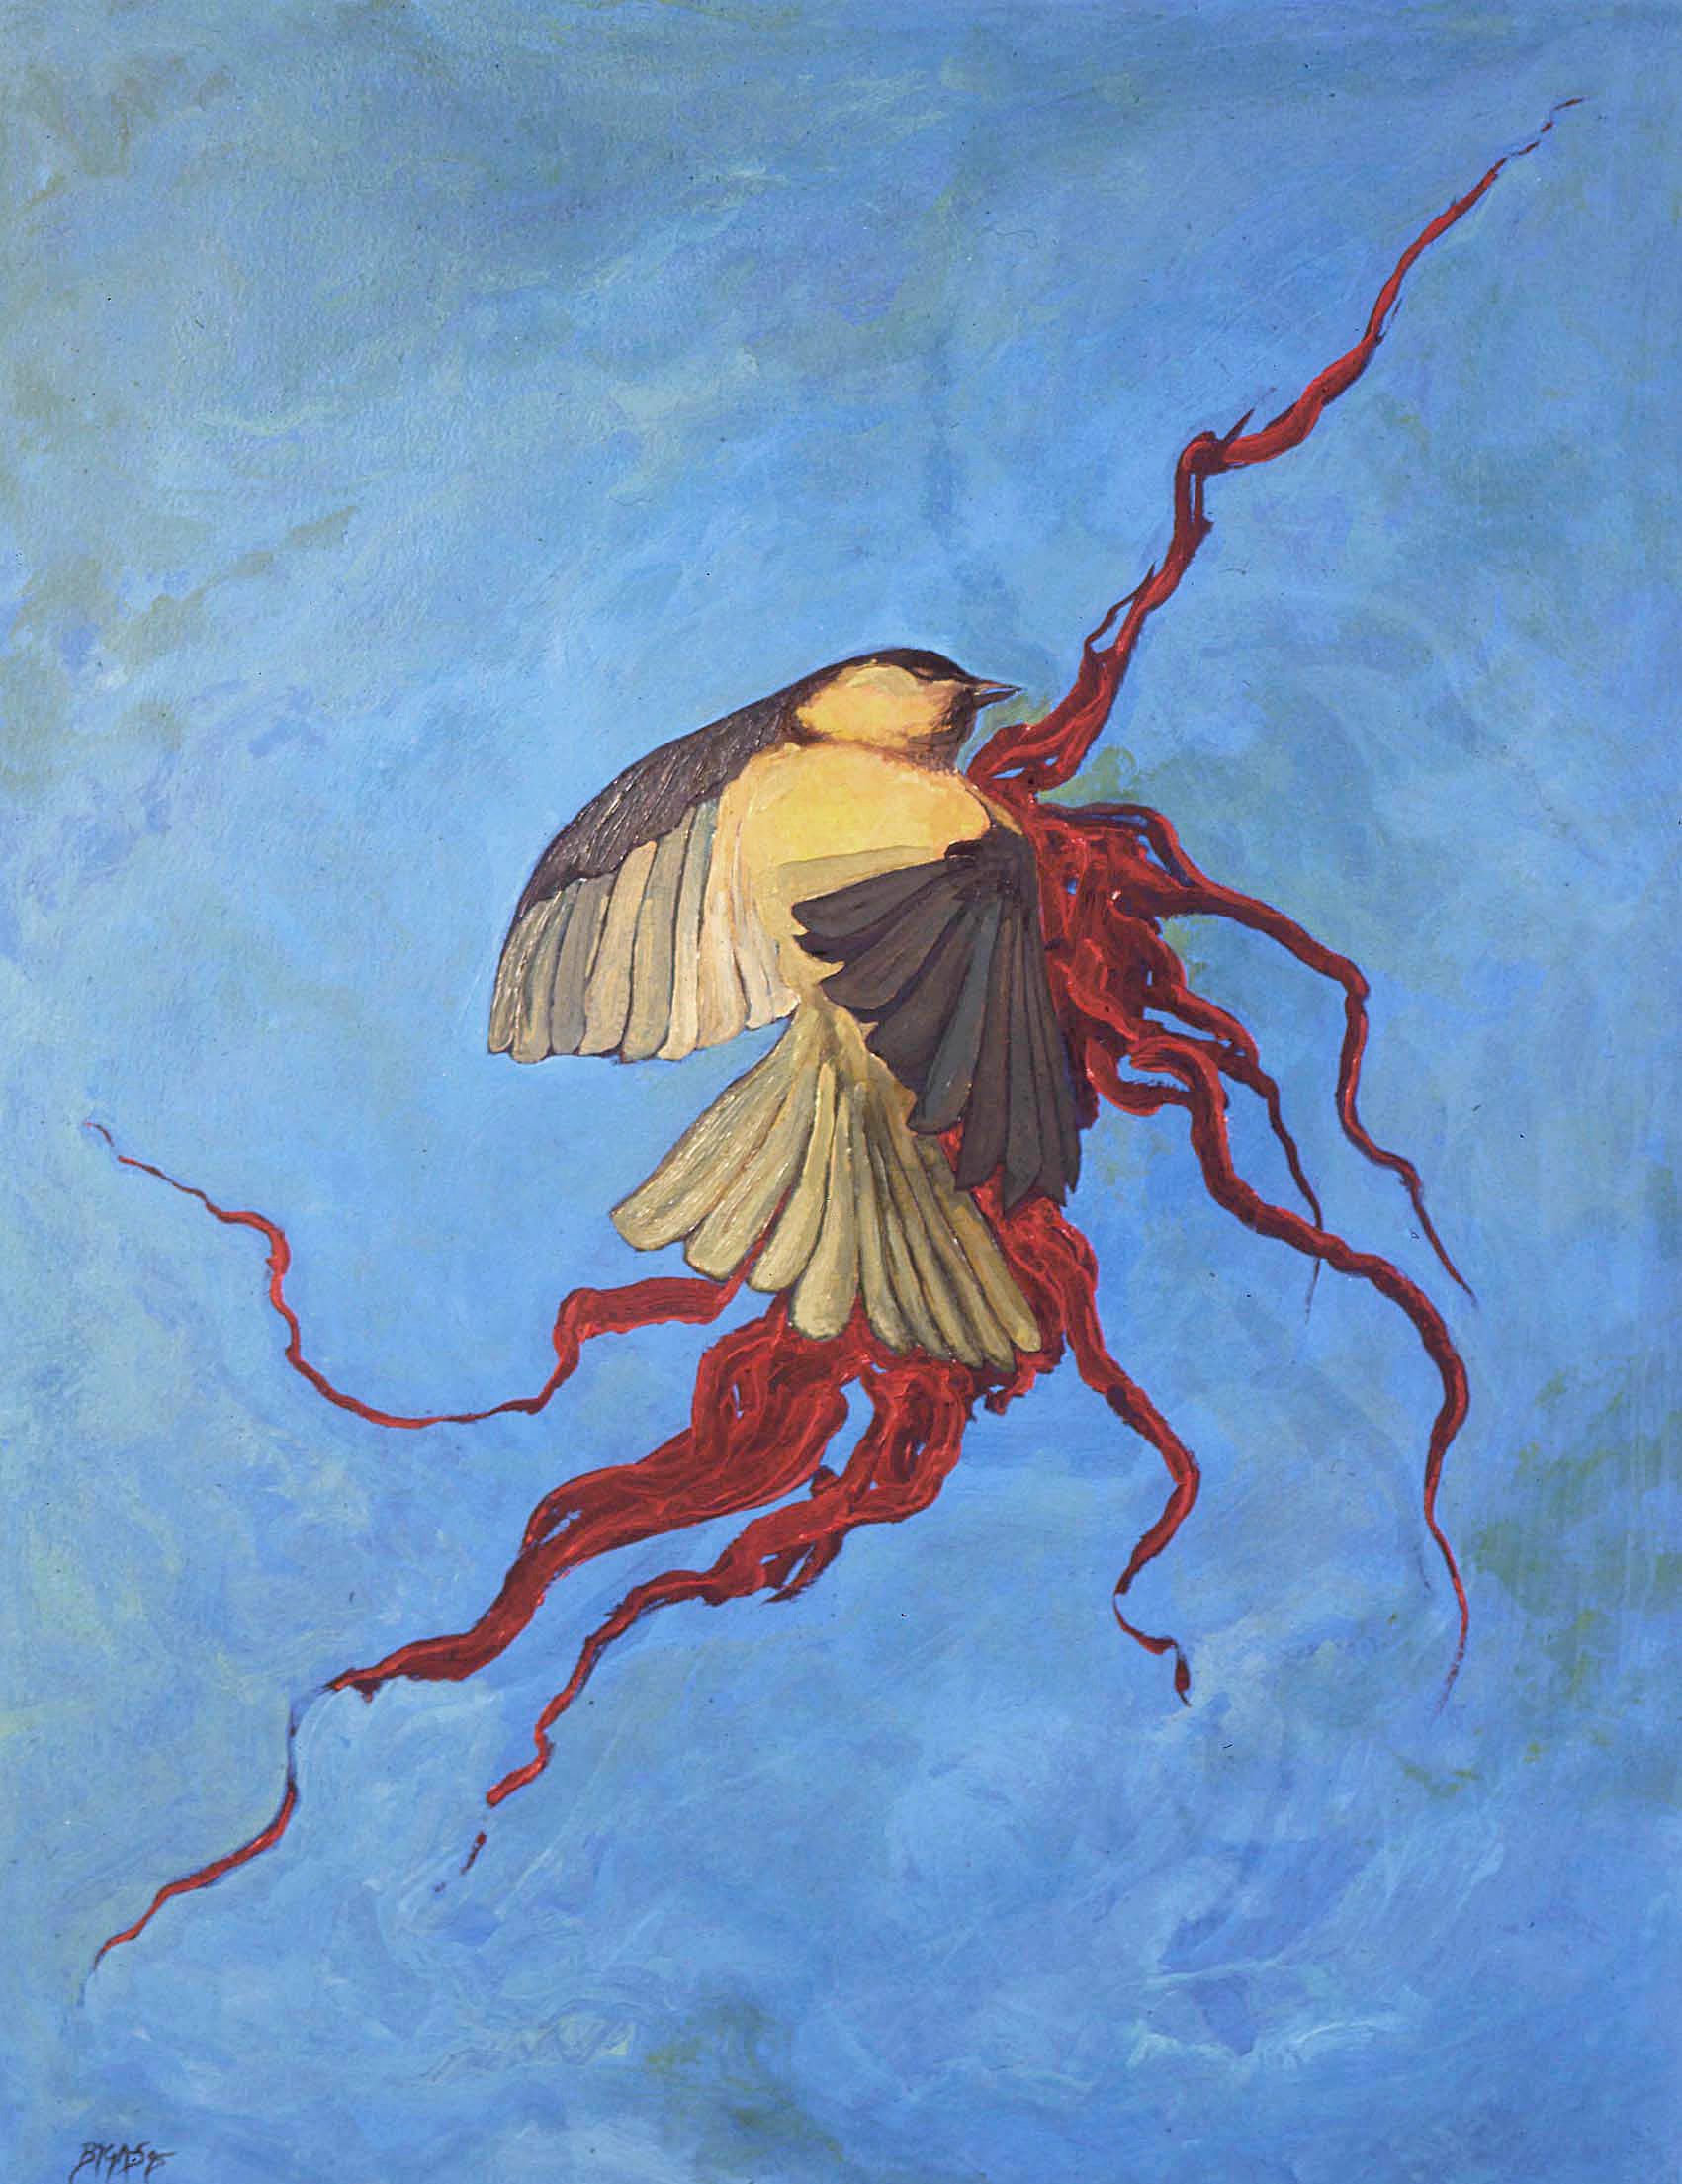 Untitled 1995 75x56cm. Oil on paper